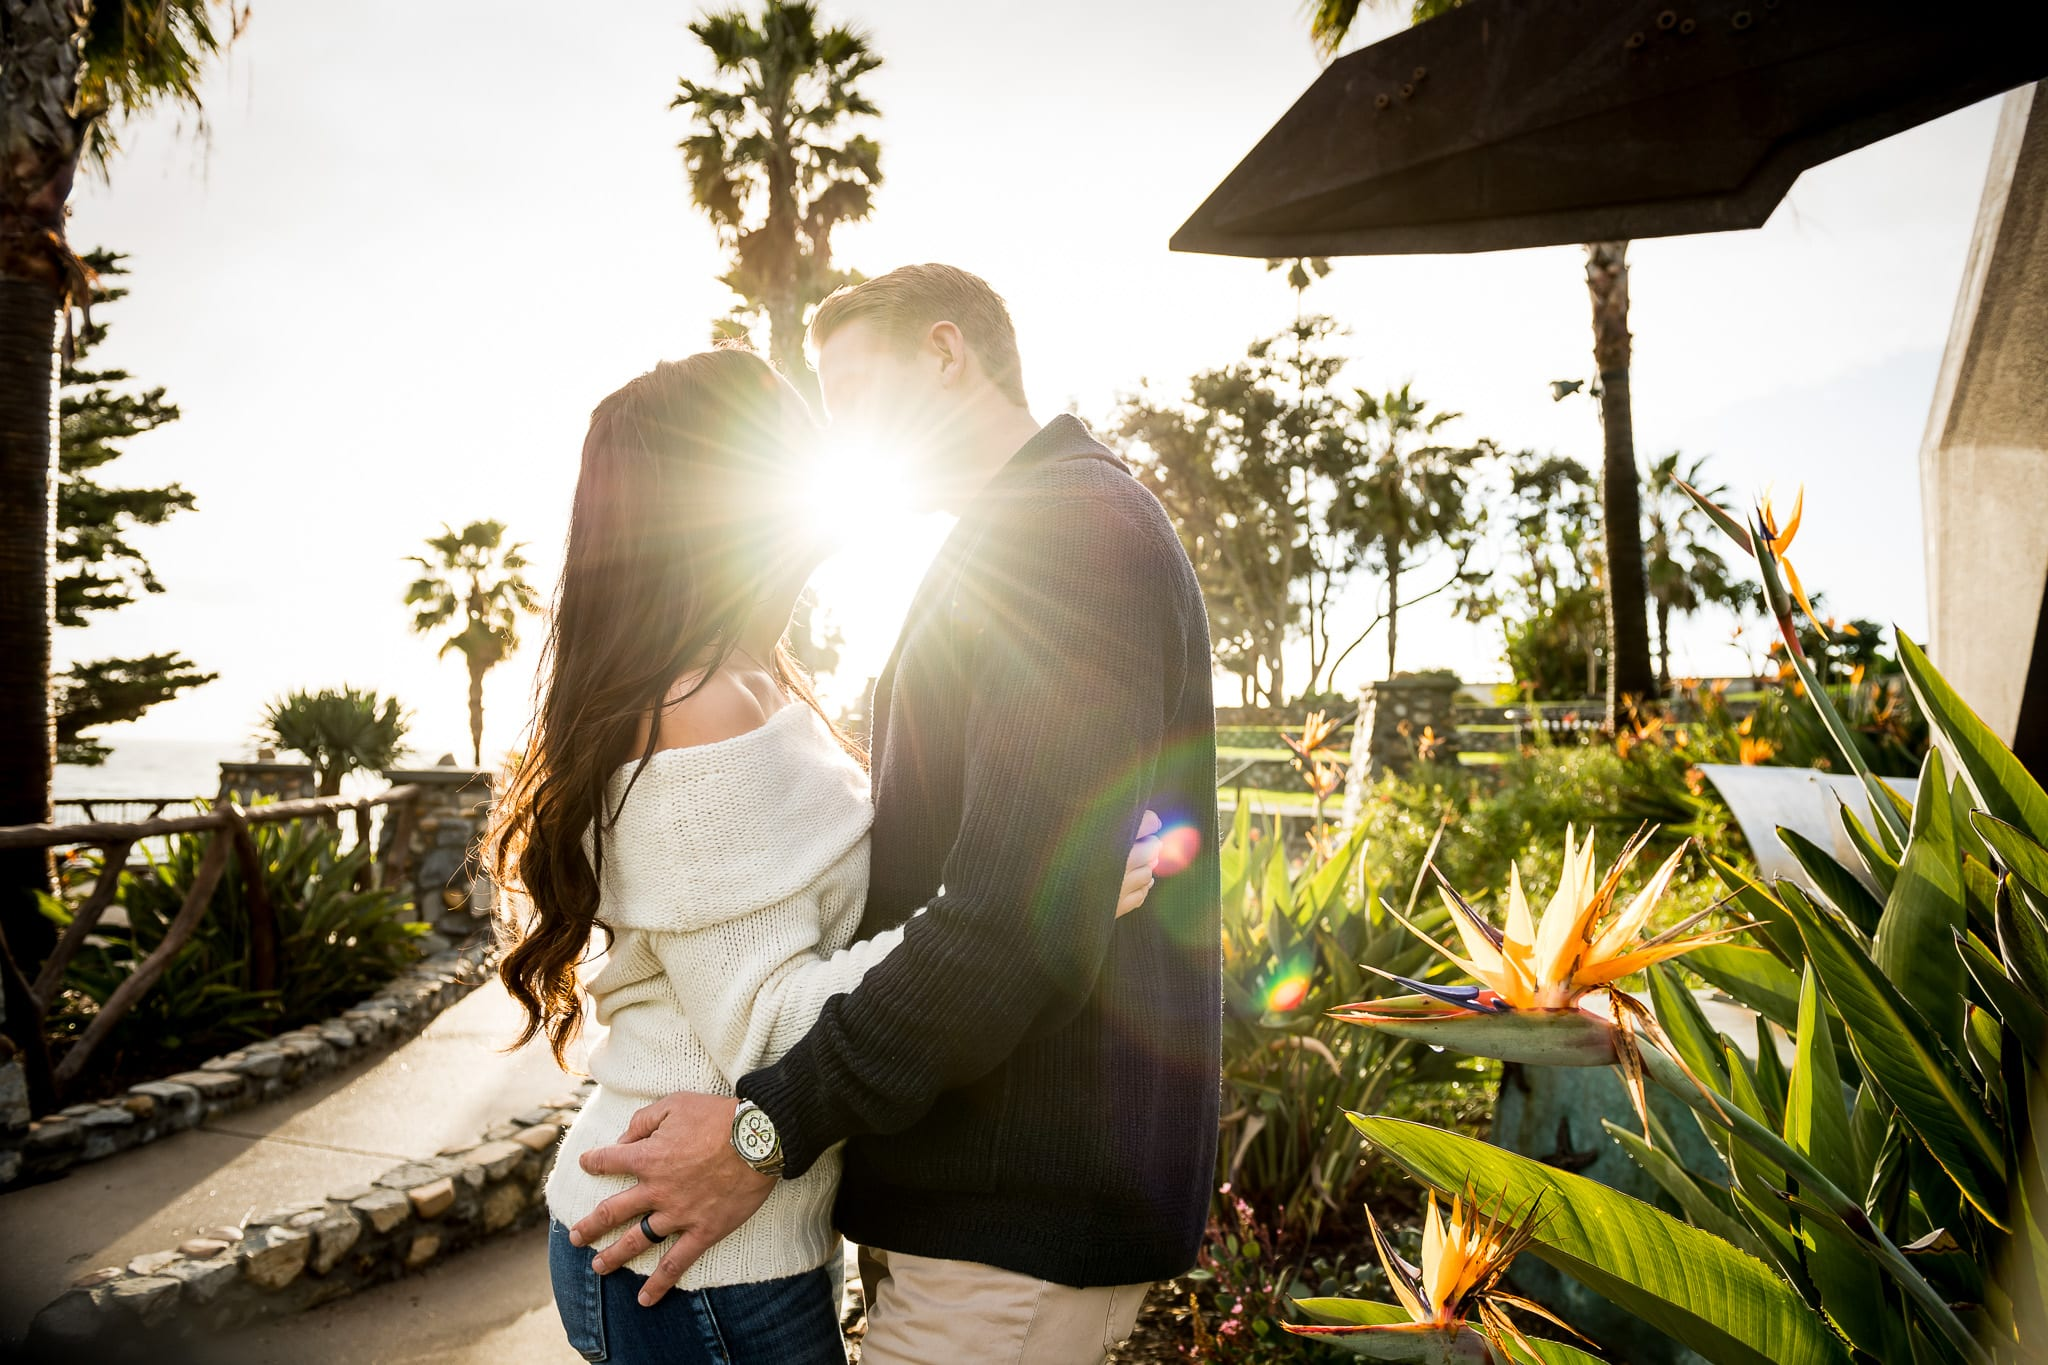 The moment right before a couple shares a sweet kiss at Heisler Park in Laguna Beach during their engagement session with the sun flaring perfectly in between their lips while they stand next to a beautiful bird of paradise flower